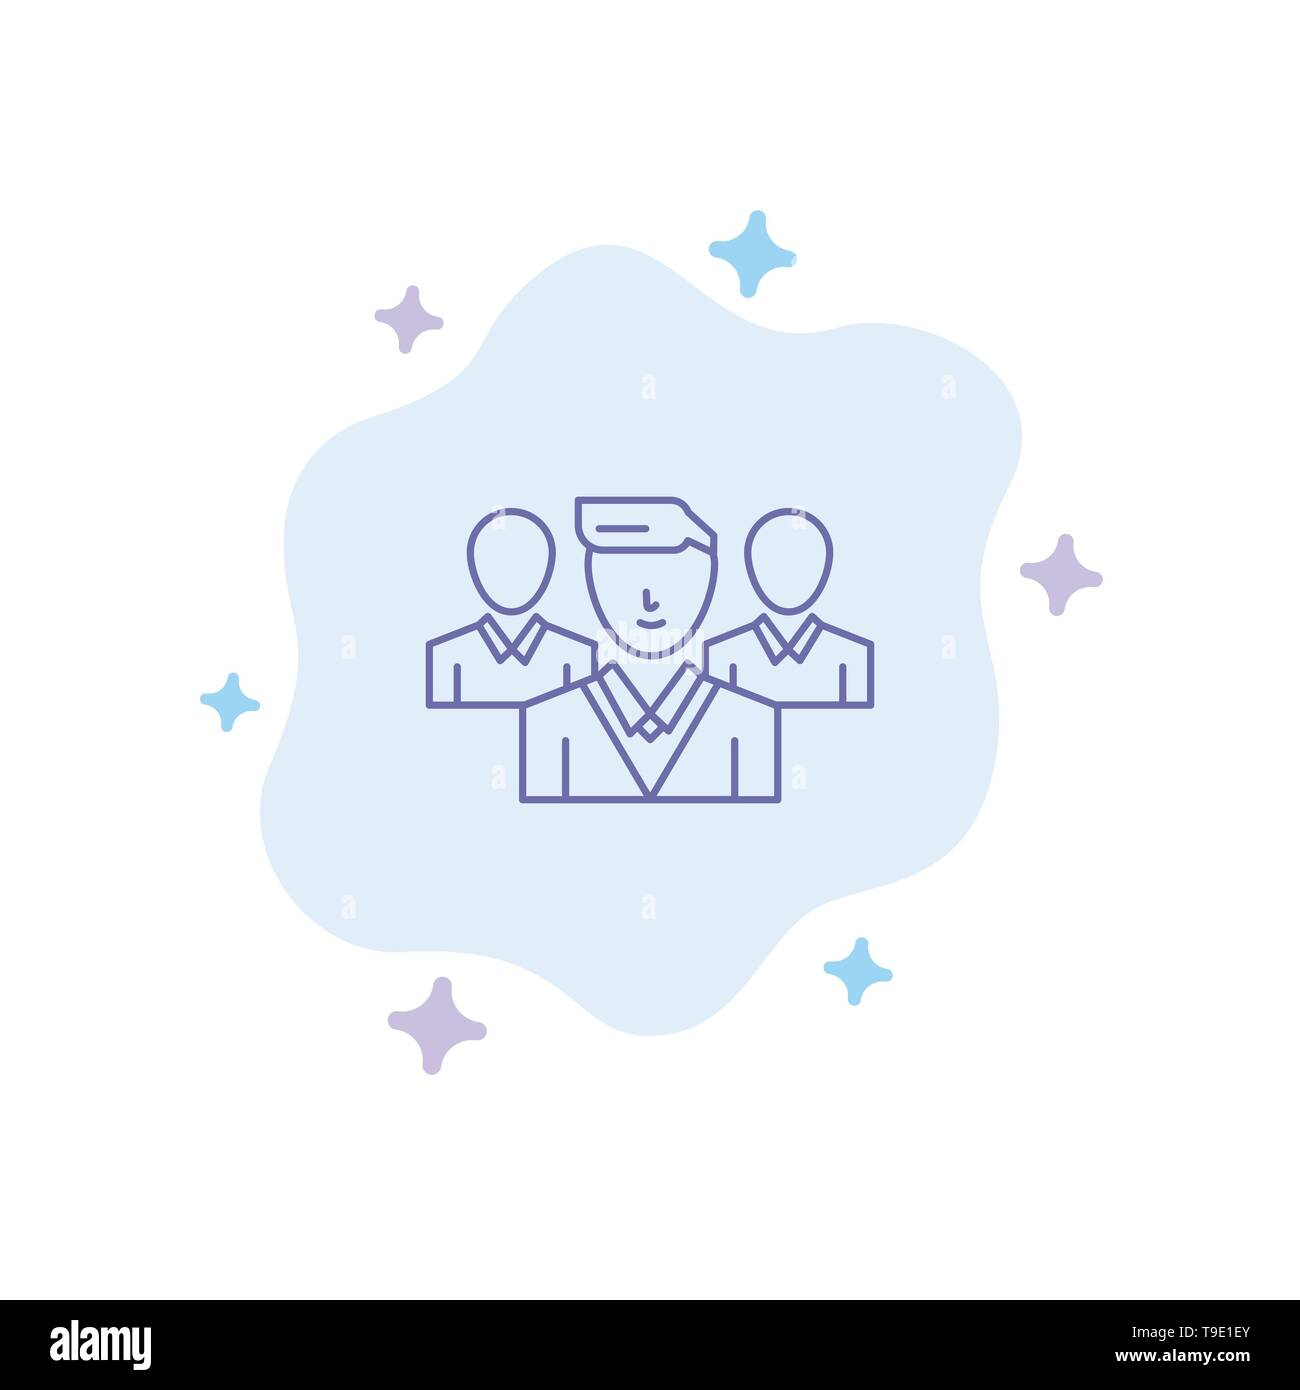 Staff, Security, Friend zone, Gang Blue Icon on Abstract Cloud Background - Stock Image